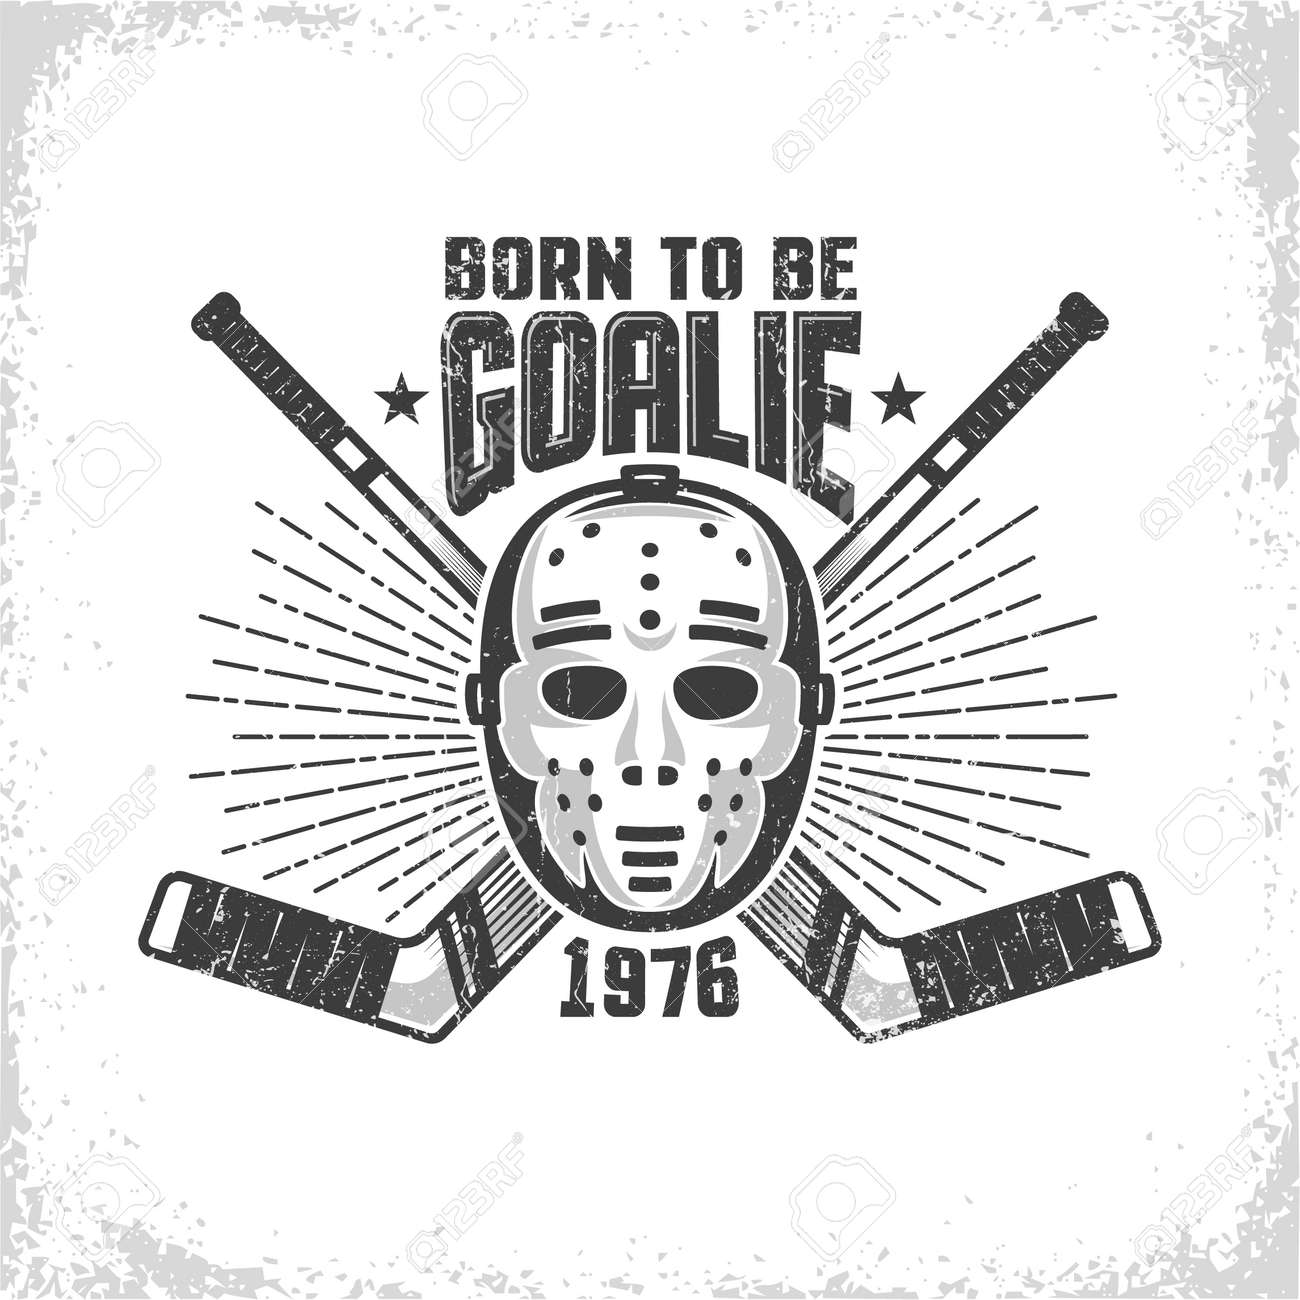 Vintage Hockey Emblem With Retro Goalie Mask And Crossed Sticks